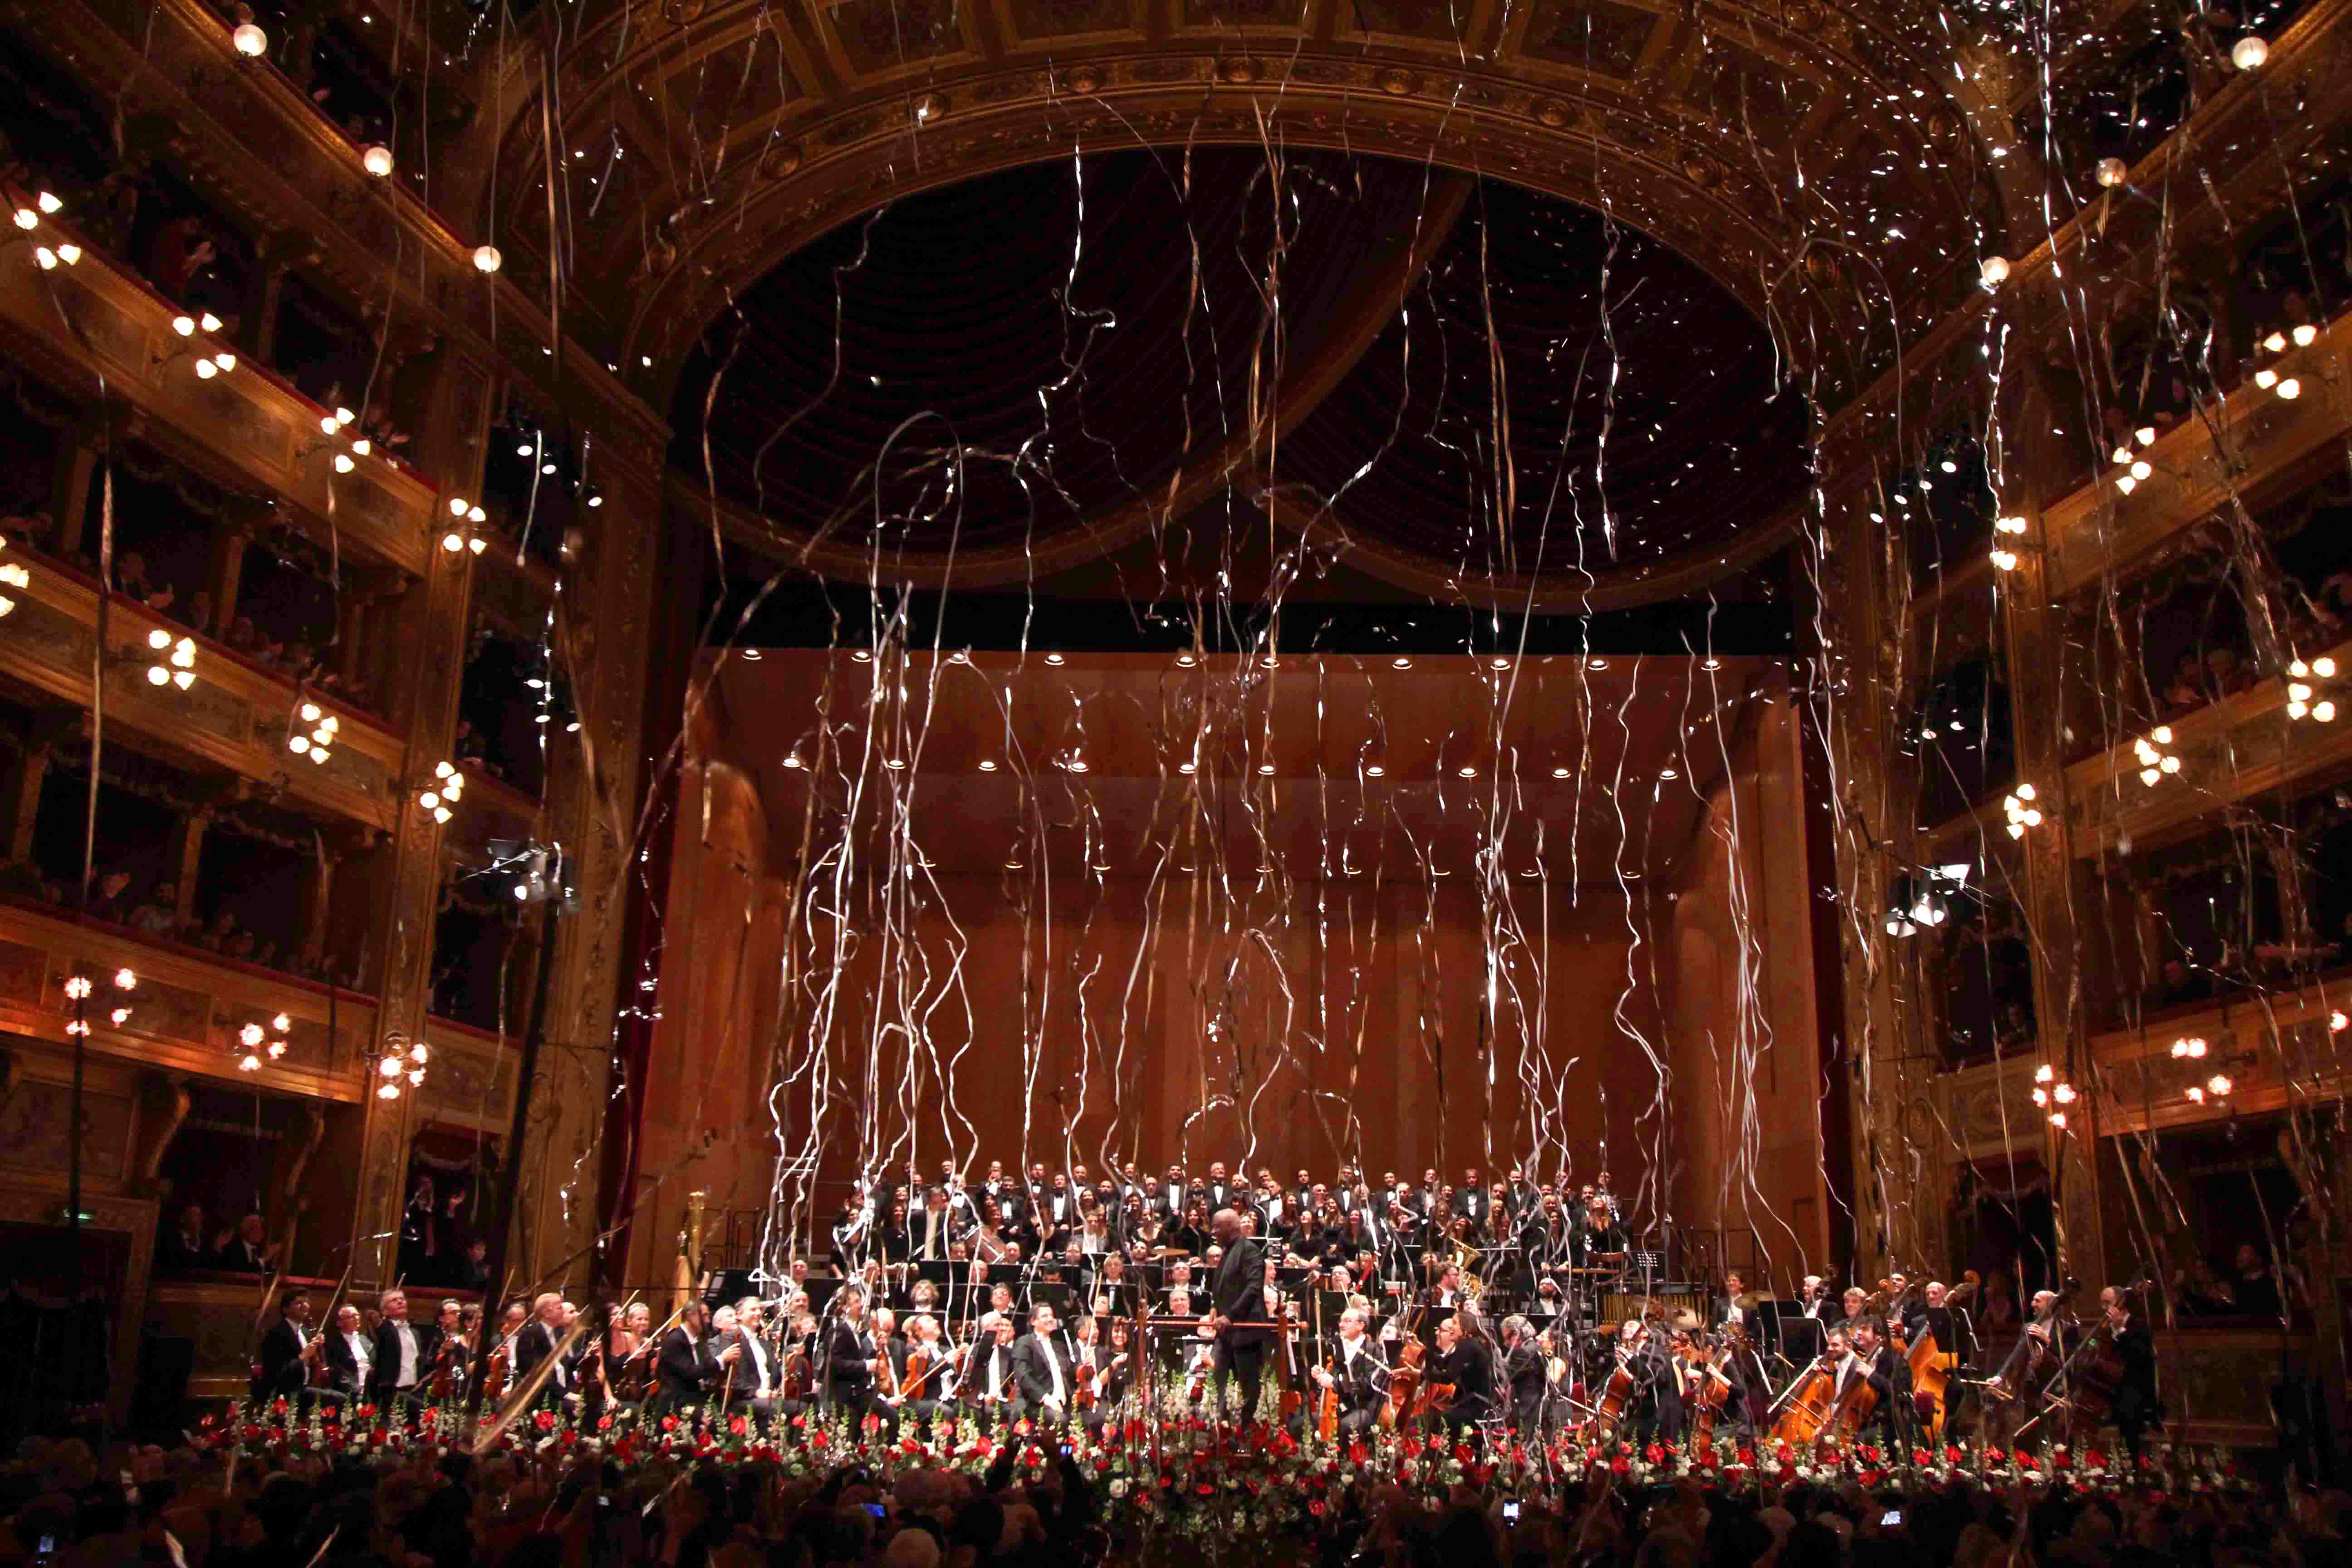 Capodanno al Teatro Massimo - ph Franco Lannino - Studio Camera